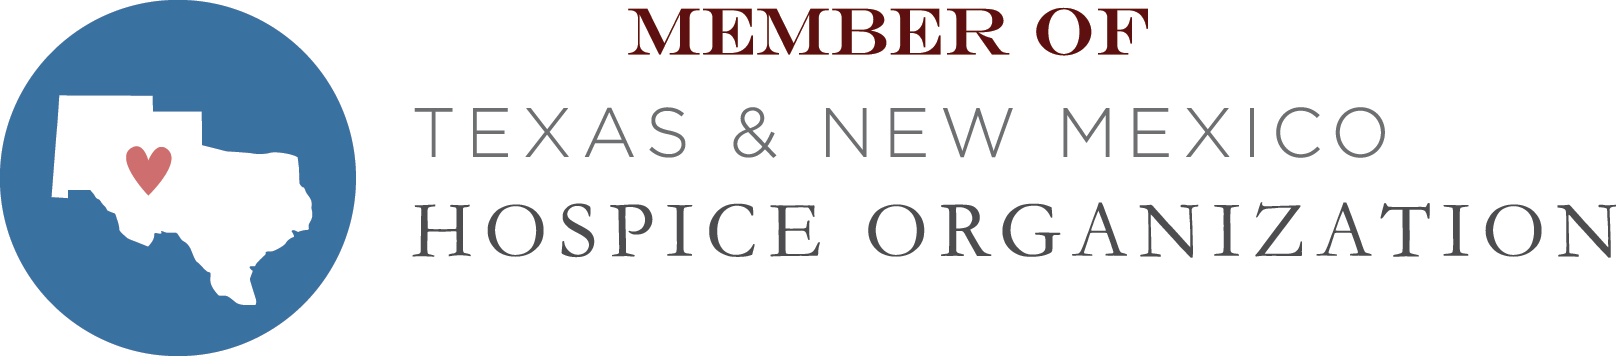 Standards_Hospice_TX_NM_Hospice_Member.png